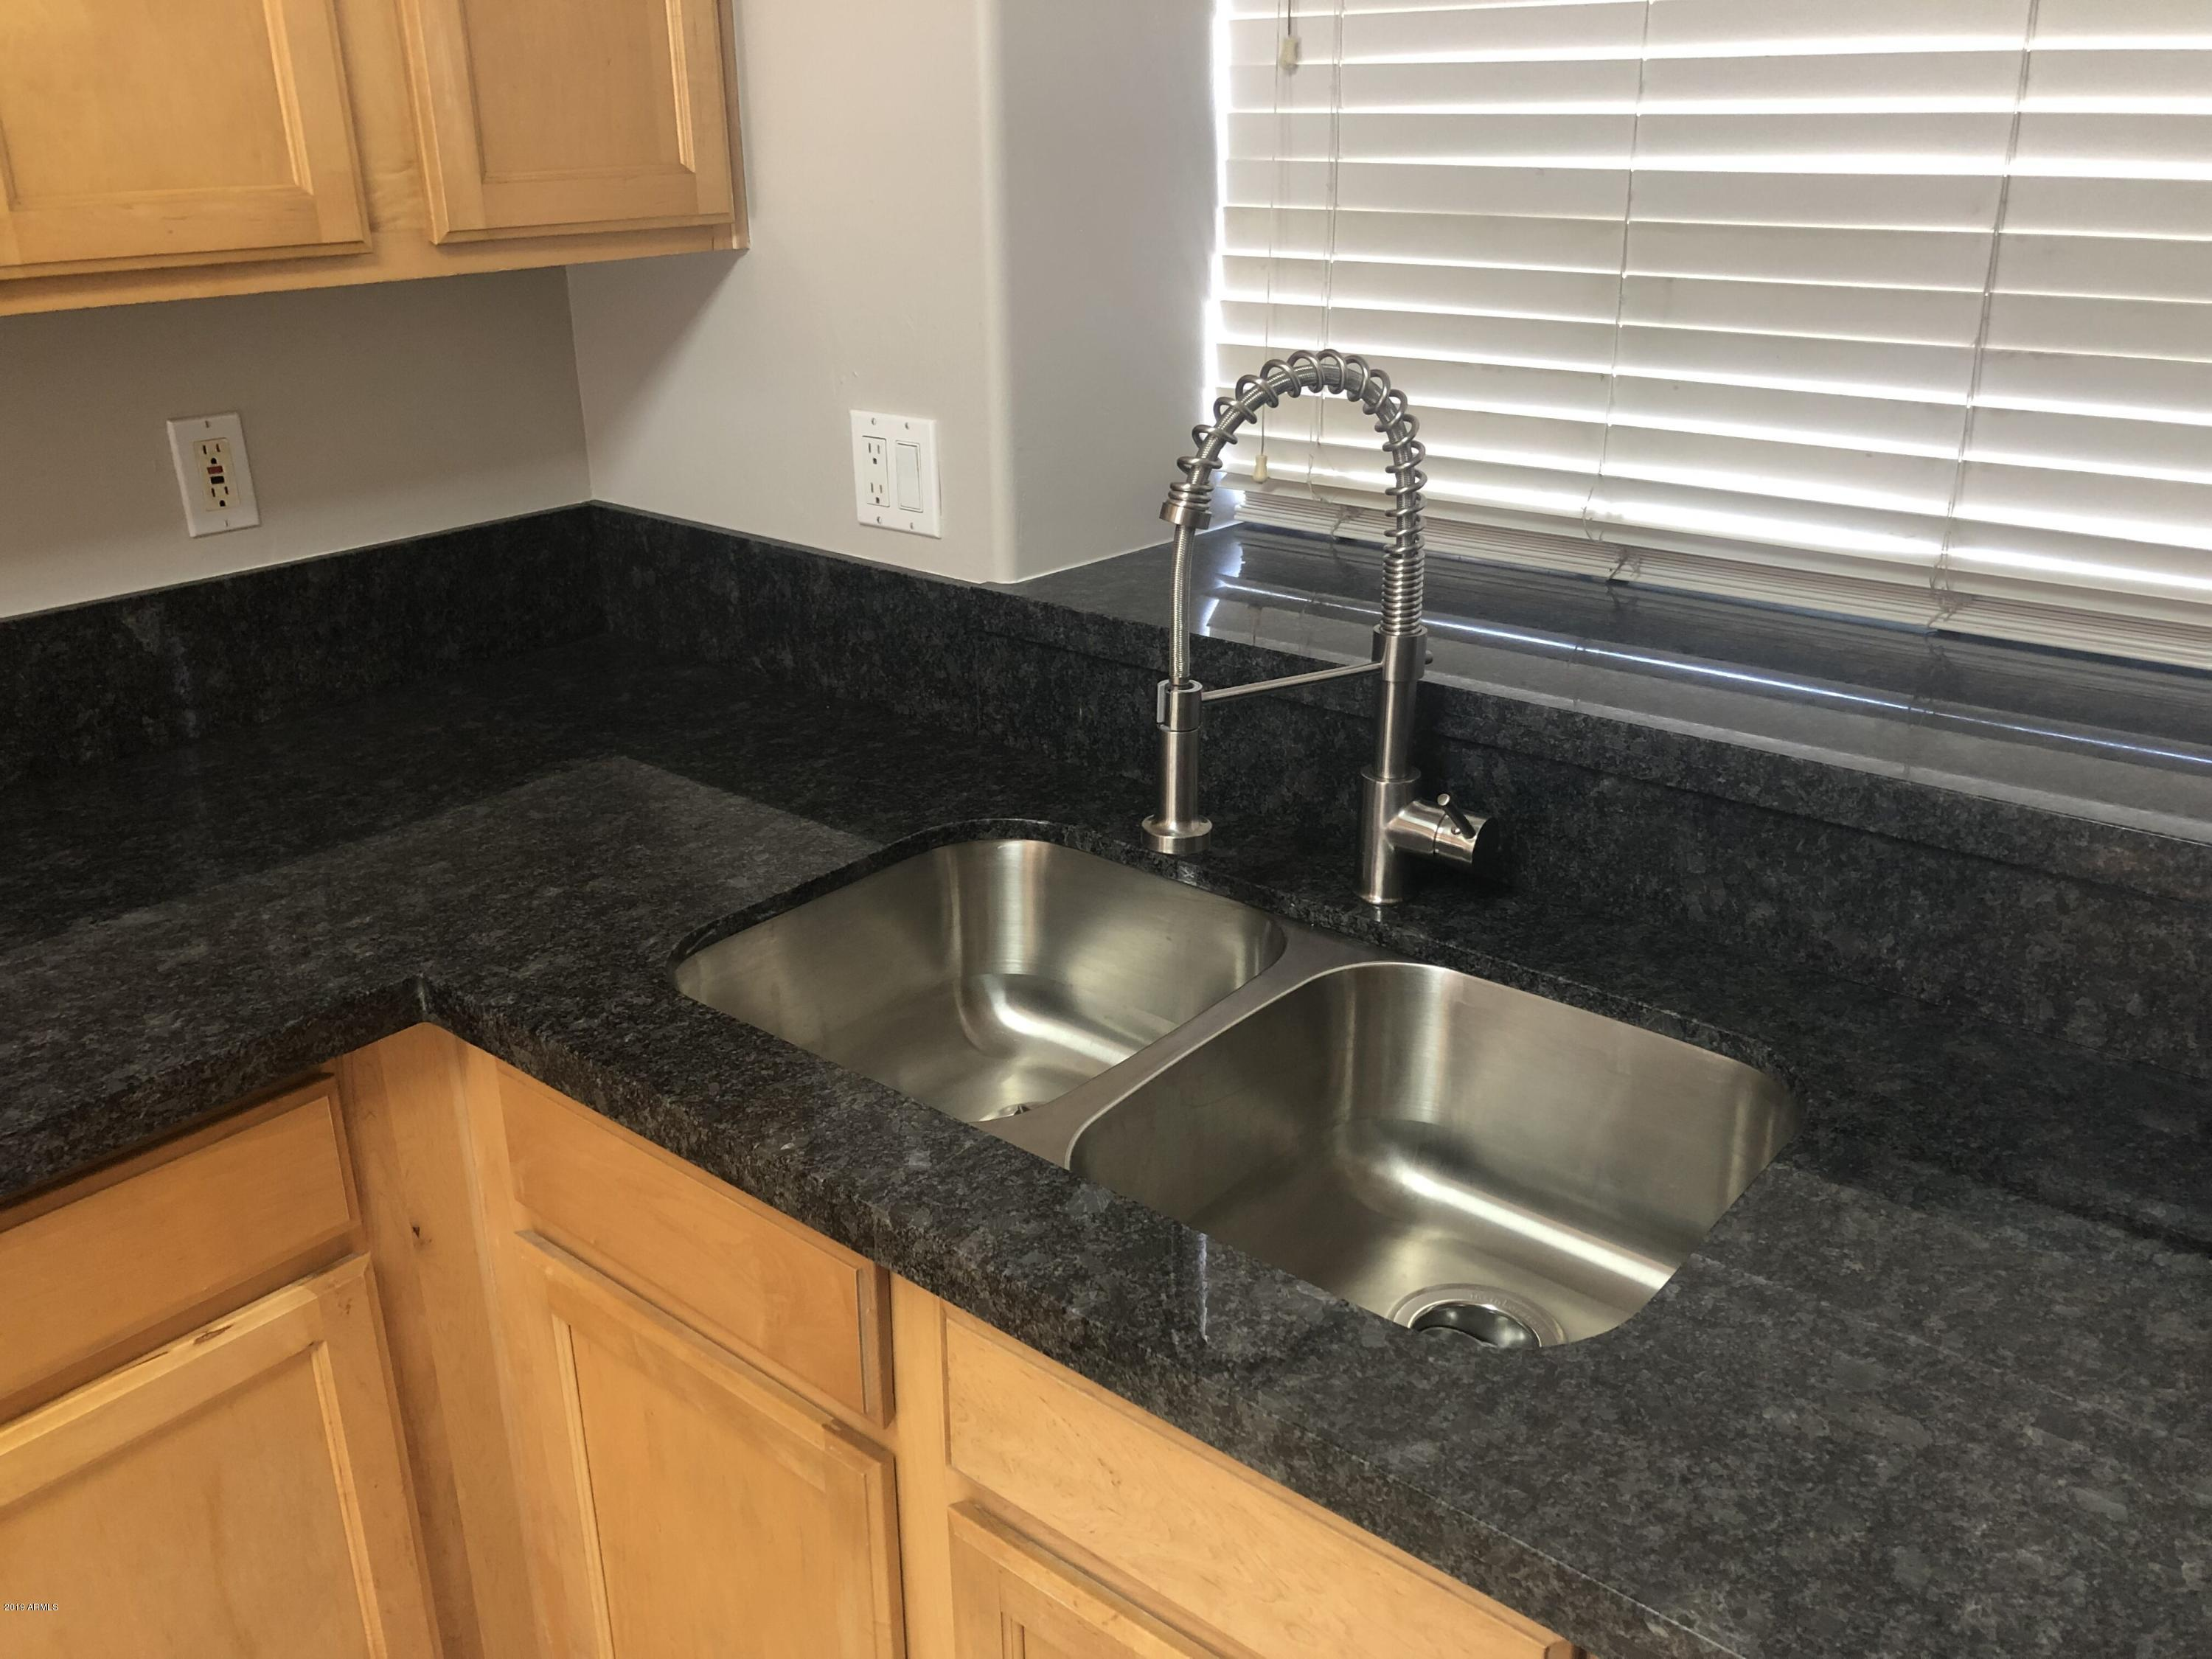 New Stainless Steel Sink and Adjustable